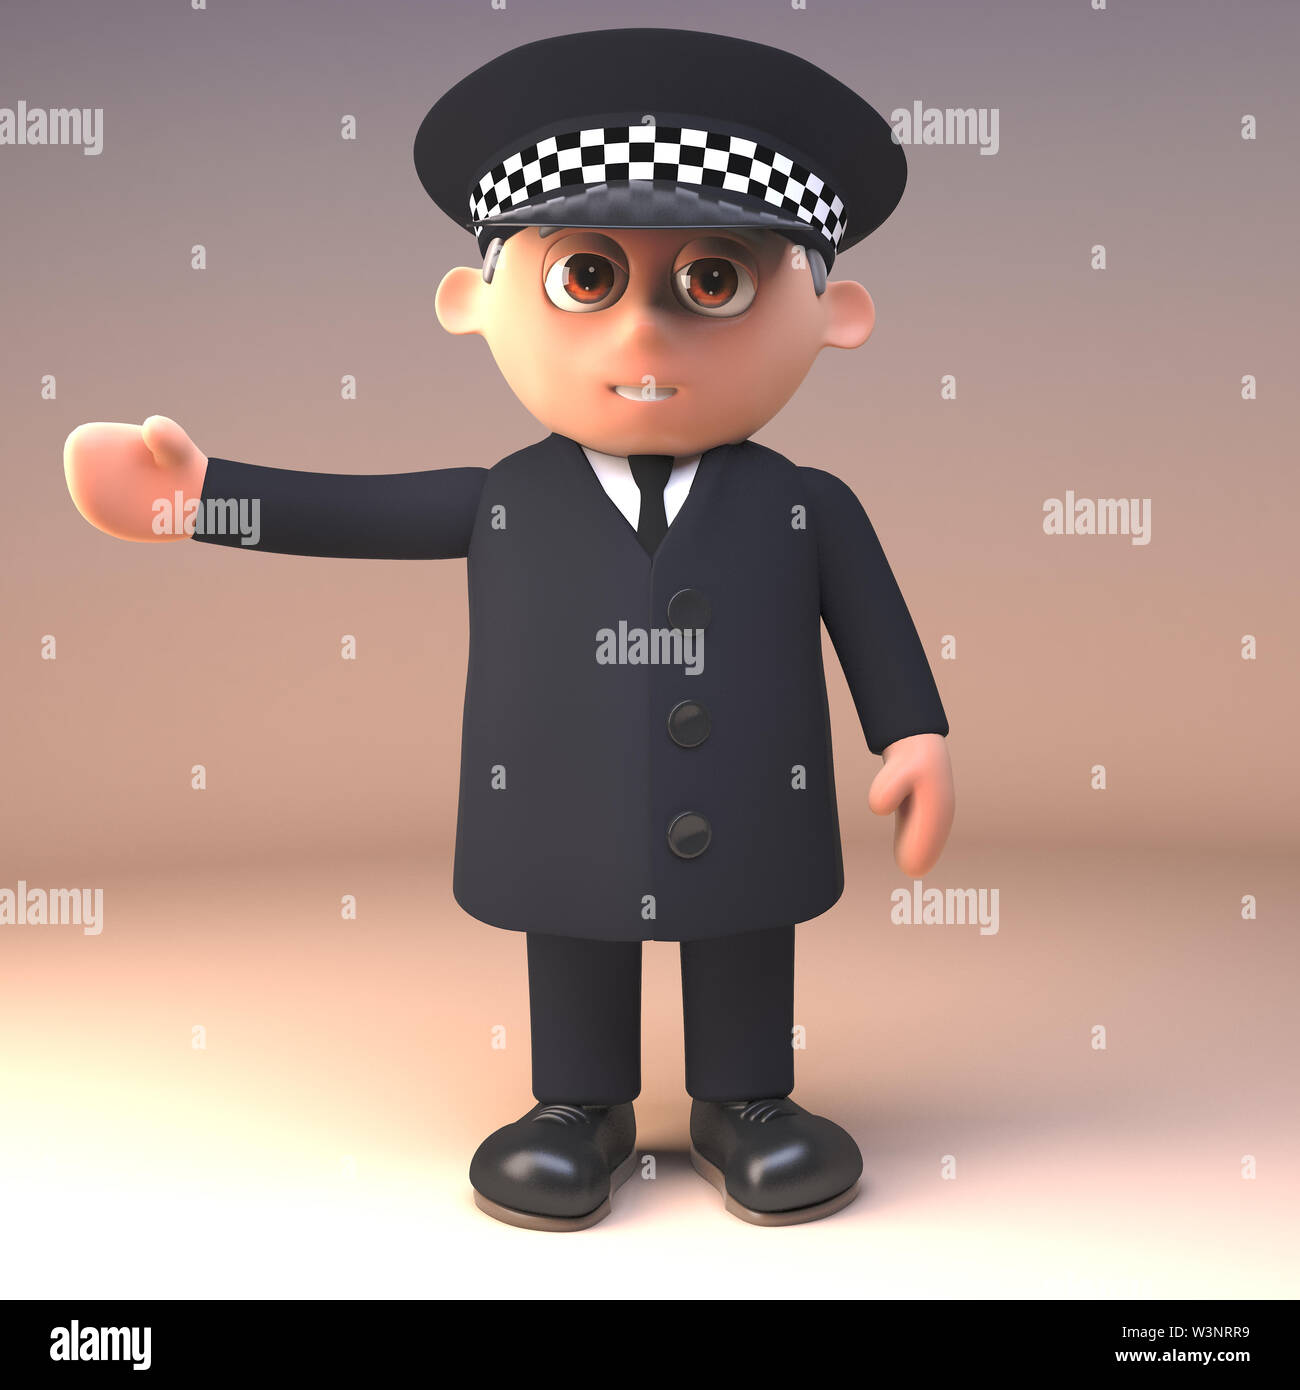 Police officer in uniform on duty gestures to the right with arm outstretched, 3d illustration render - Stock Image